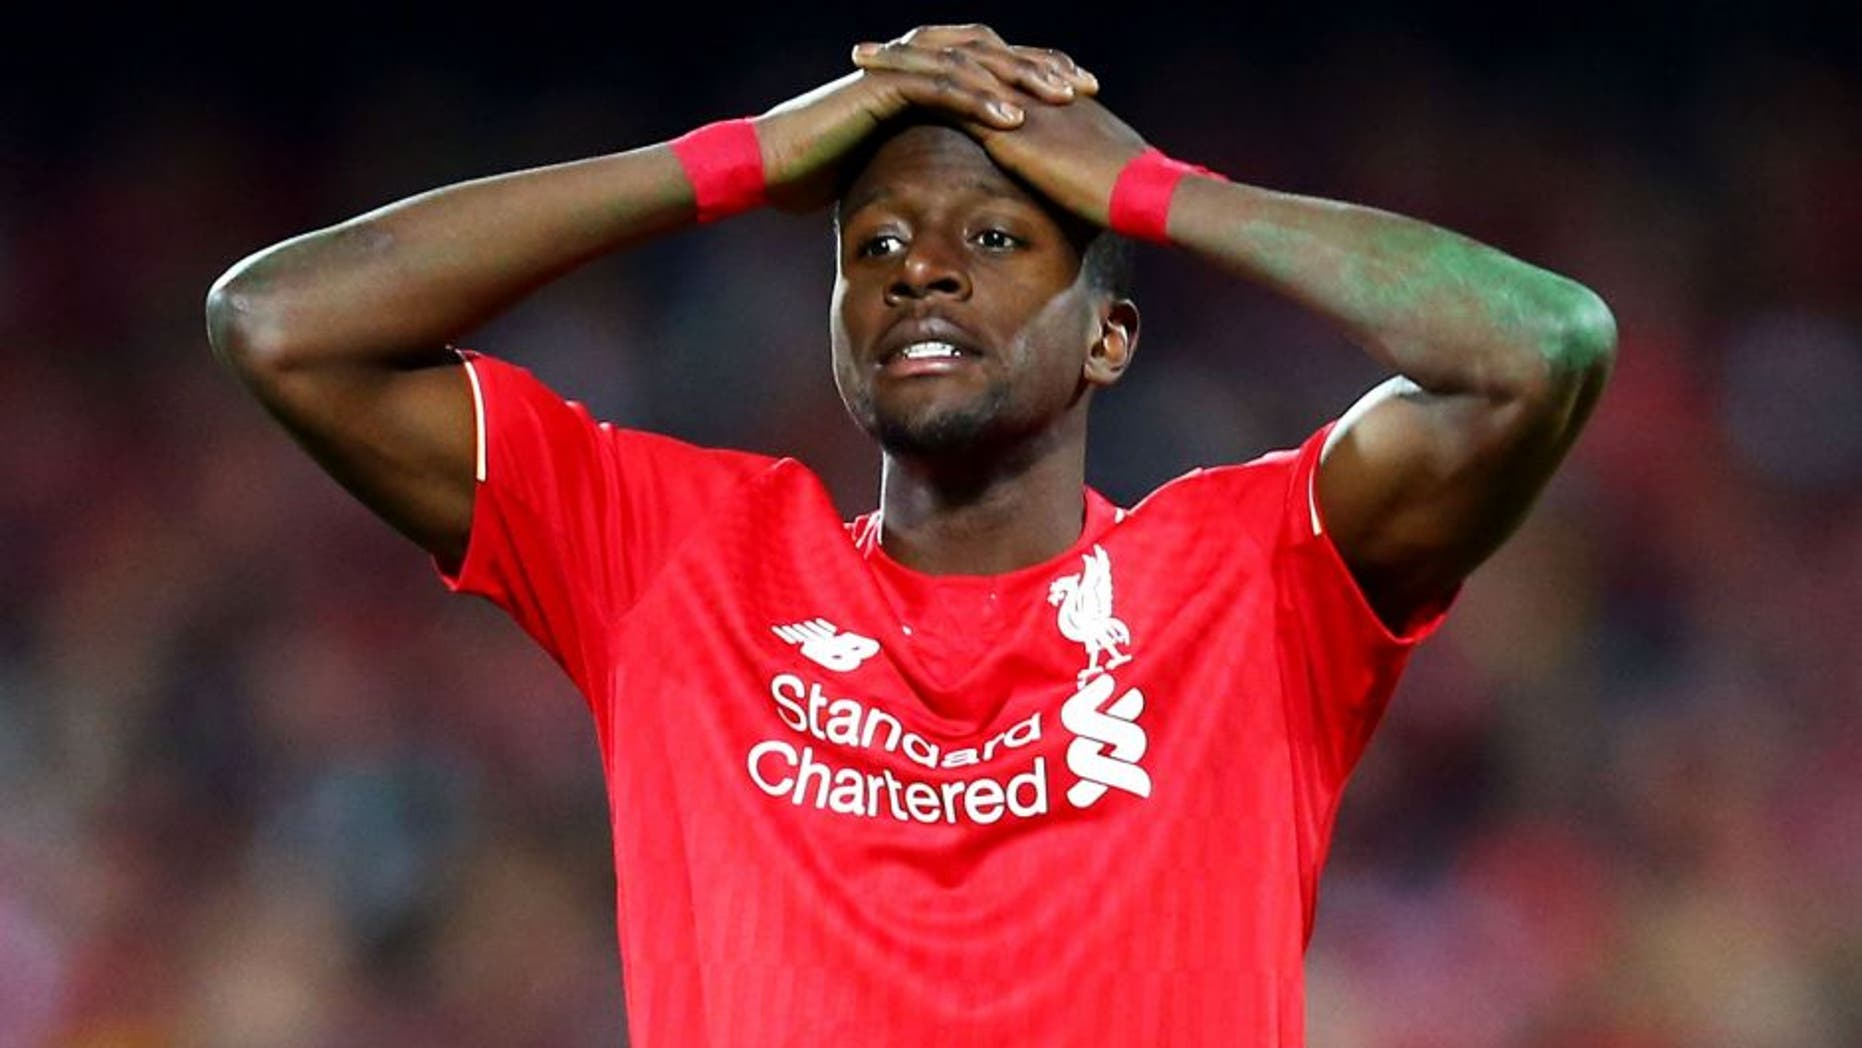 ADELAIDE, AUSTRALIA - JULY 20: c of Liverpool reacts during the international friendly match between Adelaide United and Liverpool FC at Adelaide Oval on July 20, 2015 in Adelaide, Australia. (Photo by Matt King/Getty Images)